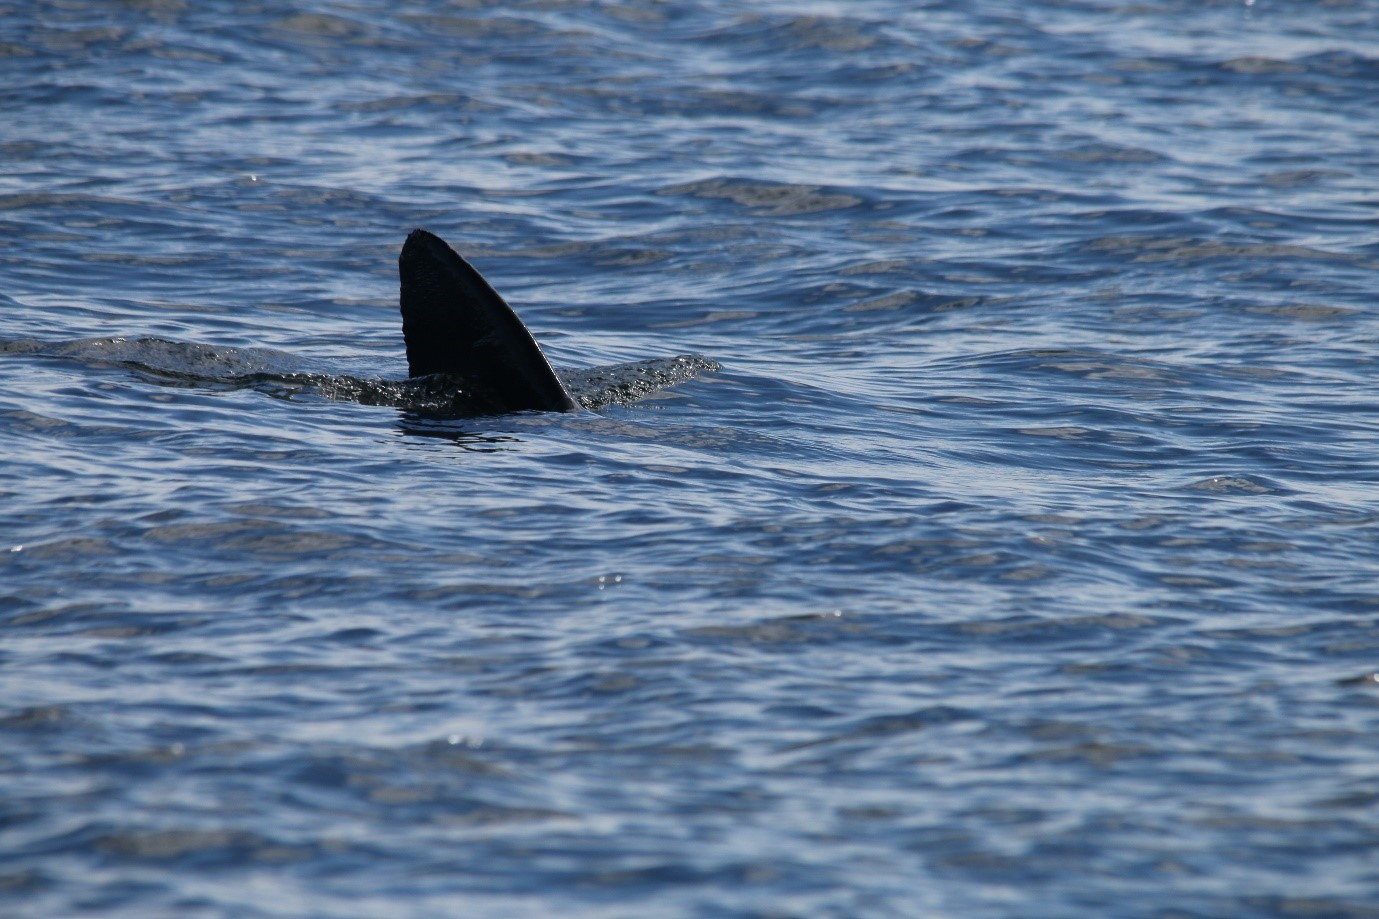 One of the basking sharks that swam past  Silurian